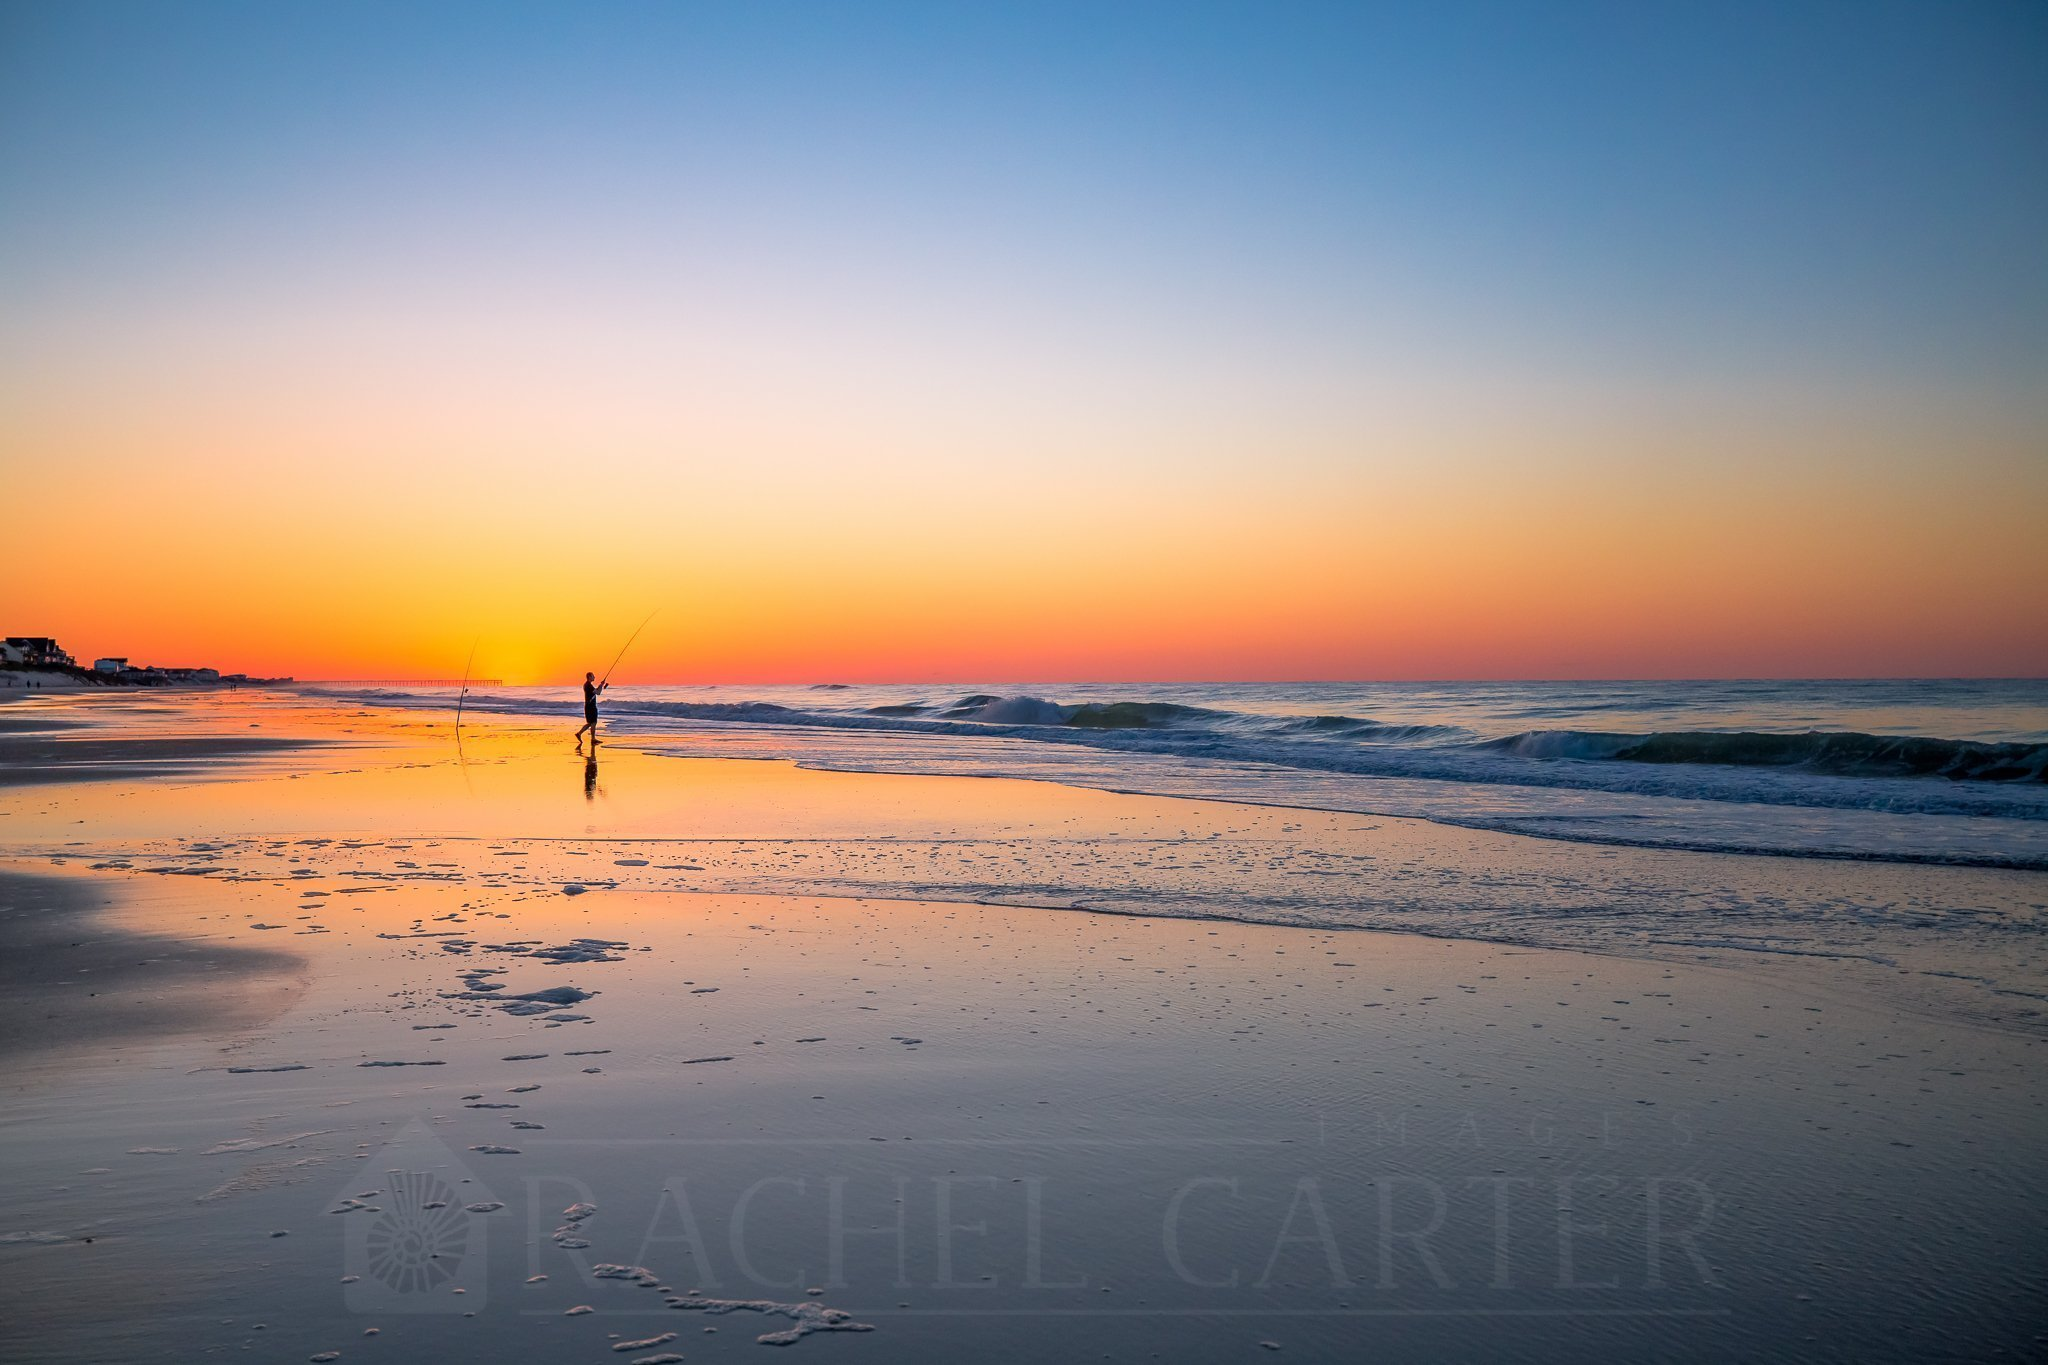 Sunrise on North Topsail Beach, taken with my Canon EF 16-35mm Lens - Sunrise Photo Tips by Rachel Carter Images